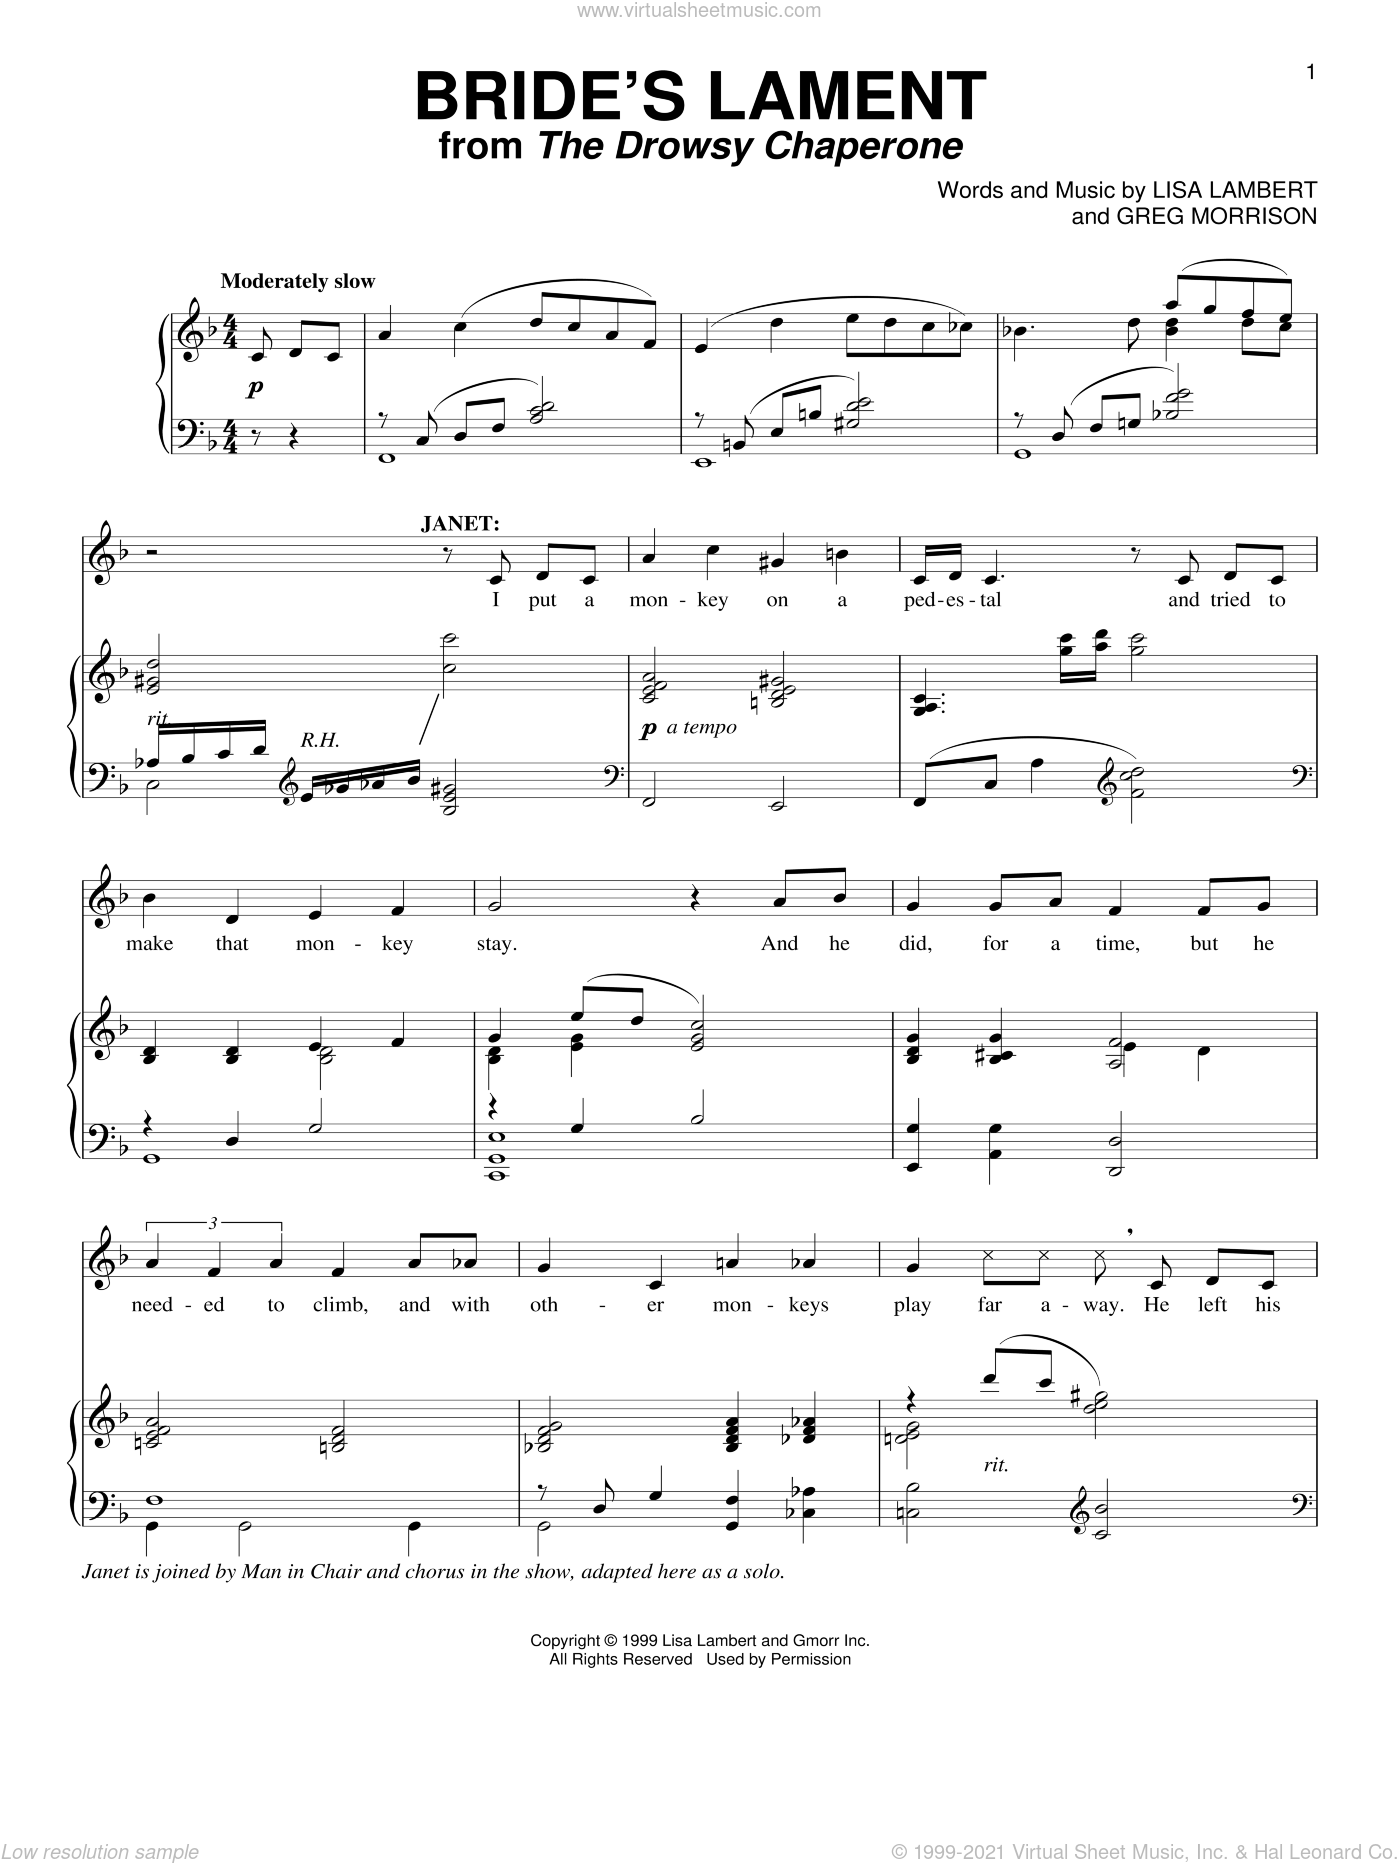 Bride's Lament sheet music for voice and piano by Greg Morrison and Lisa Lambert